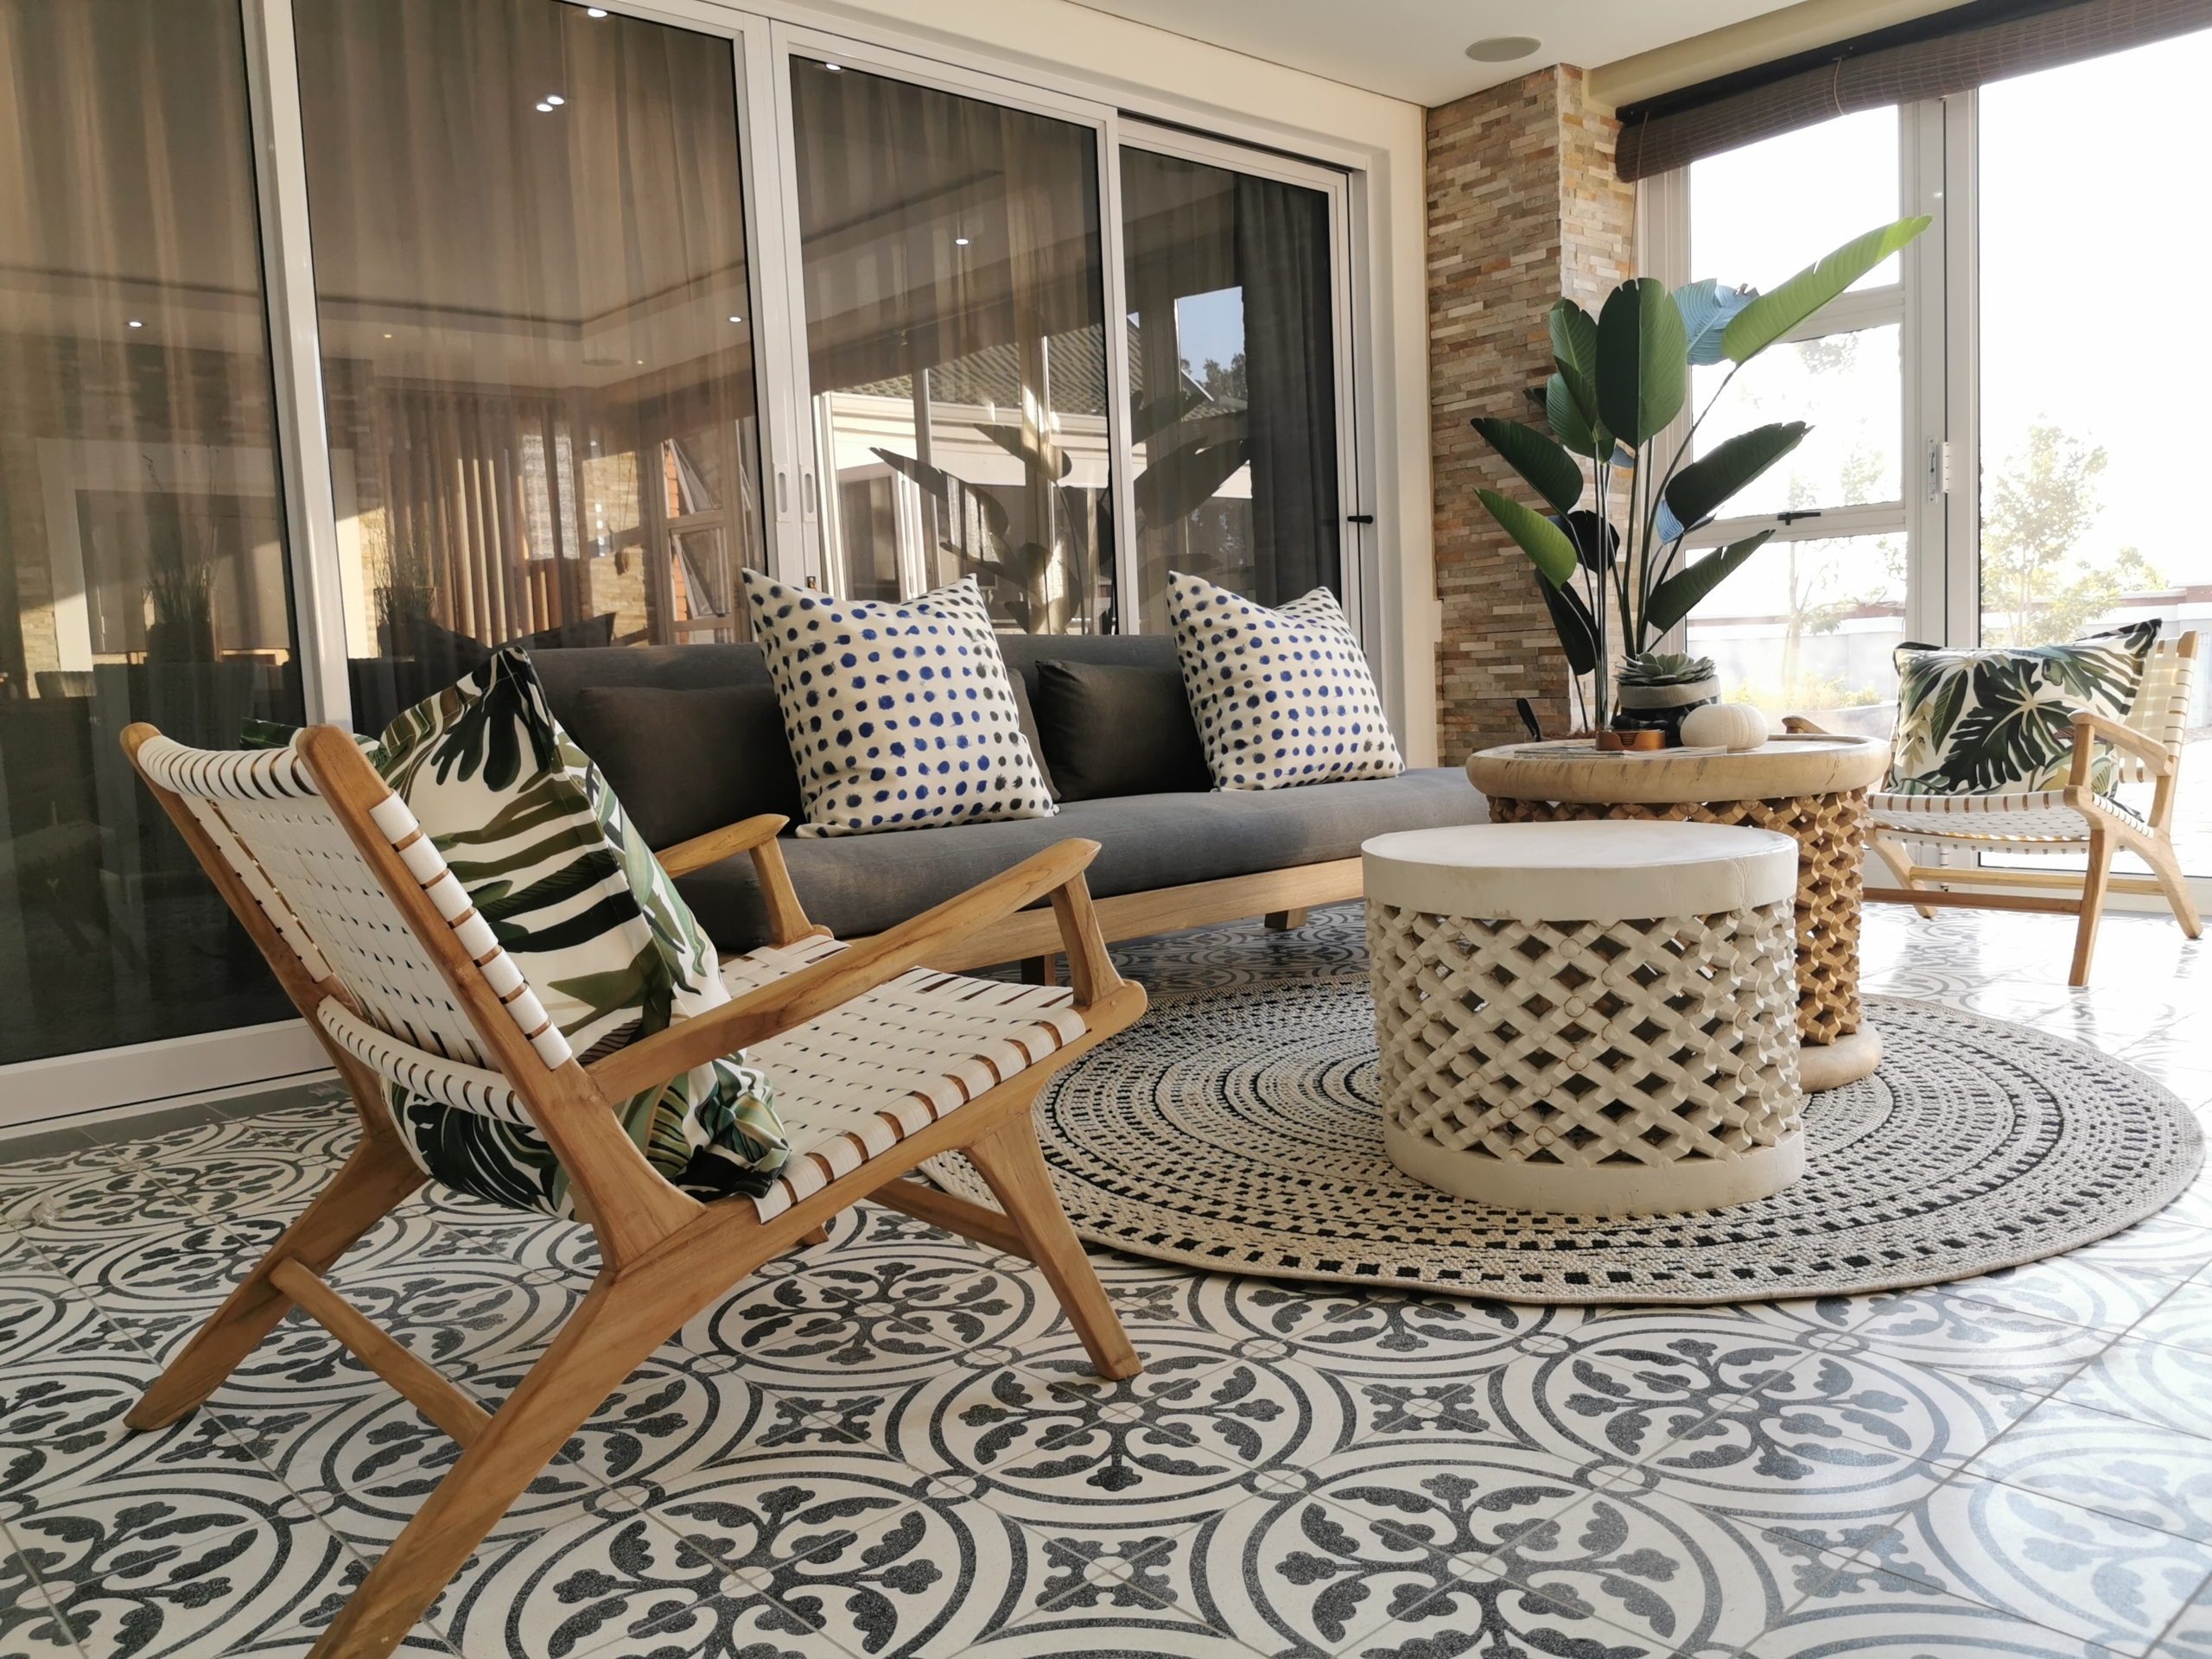 Refreshed Designs- House Sivalingam, Patio